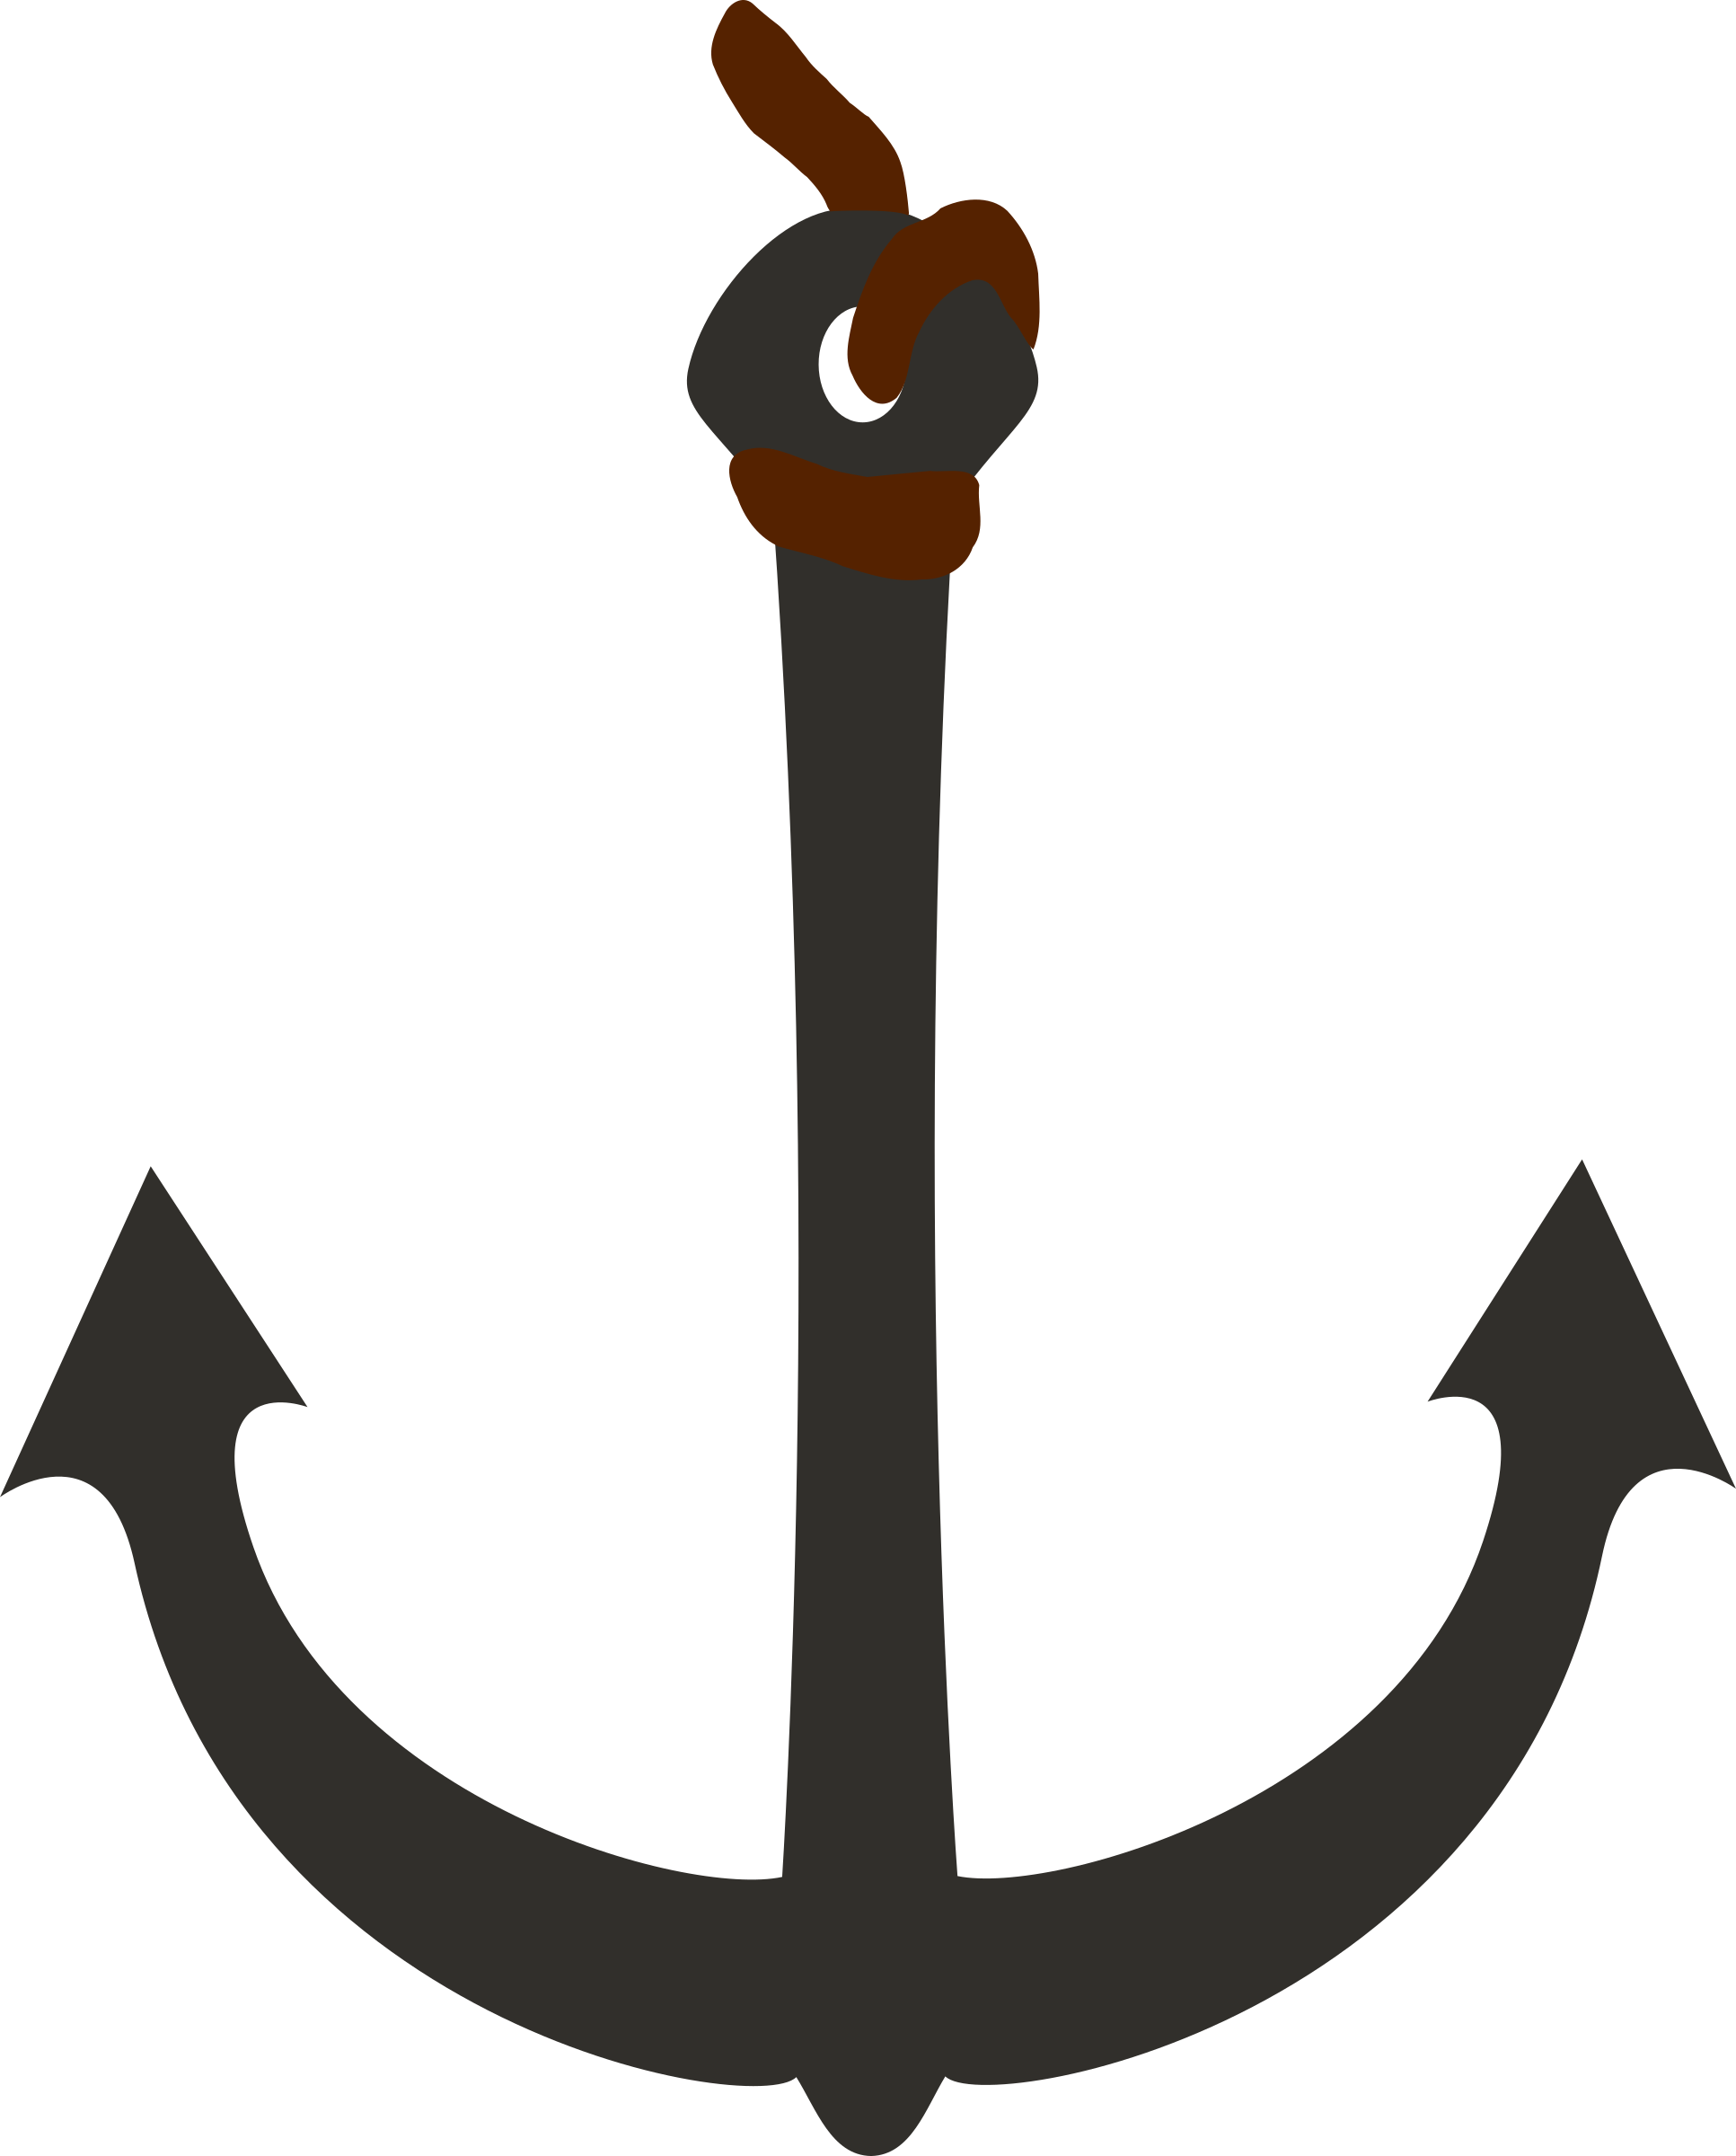 Clipart anchor rope.